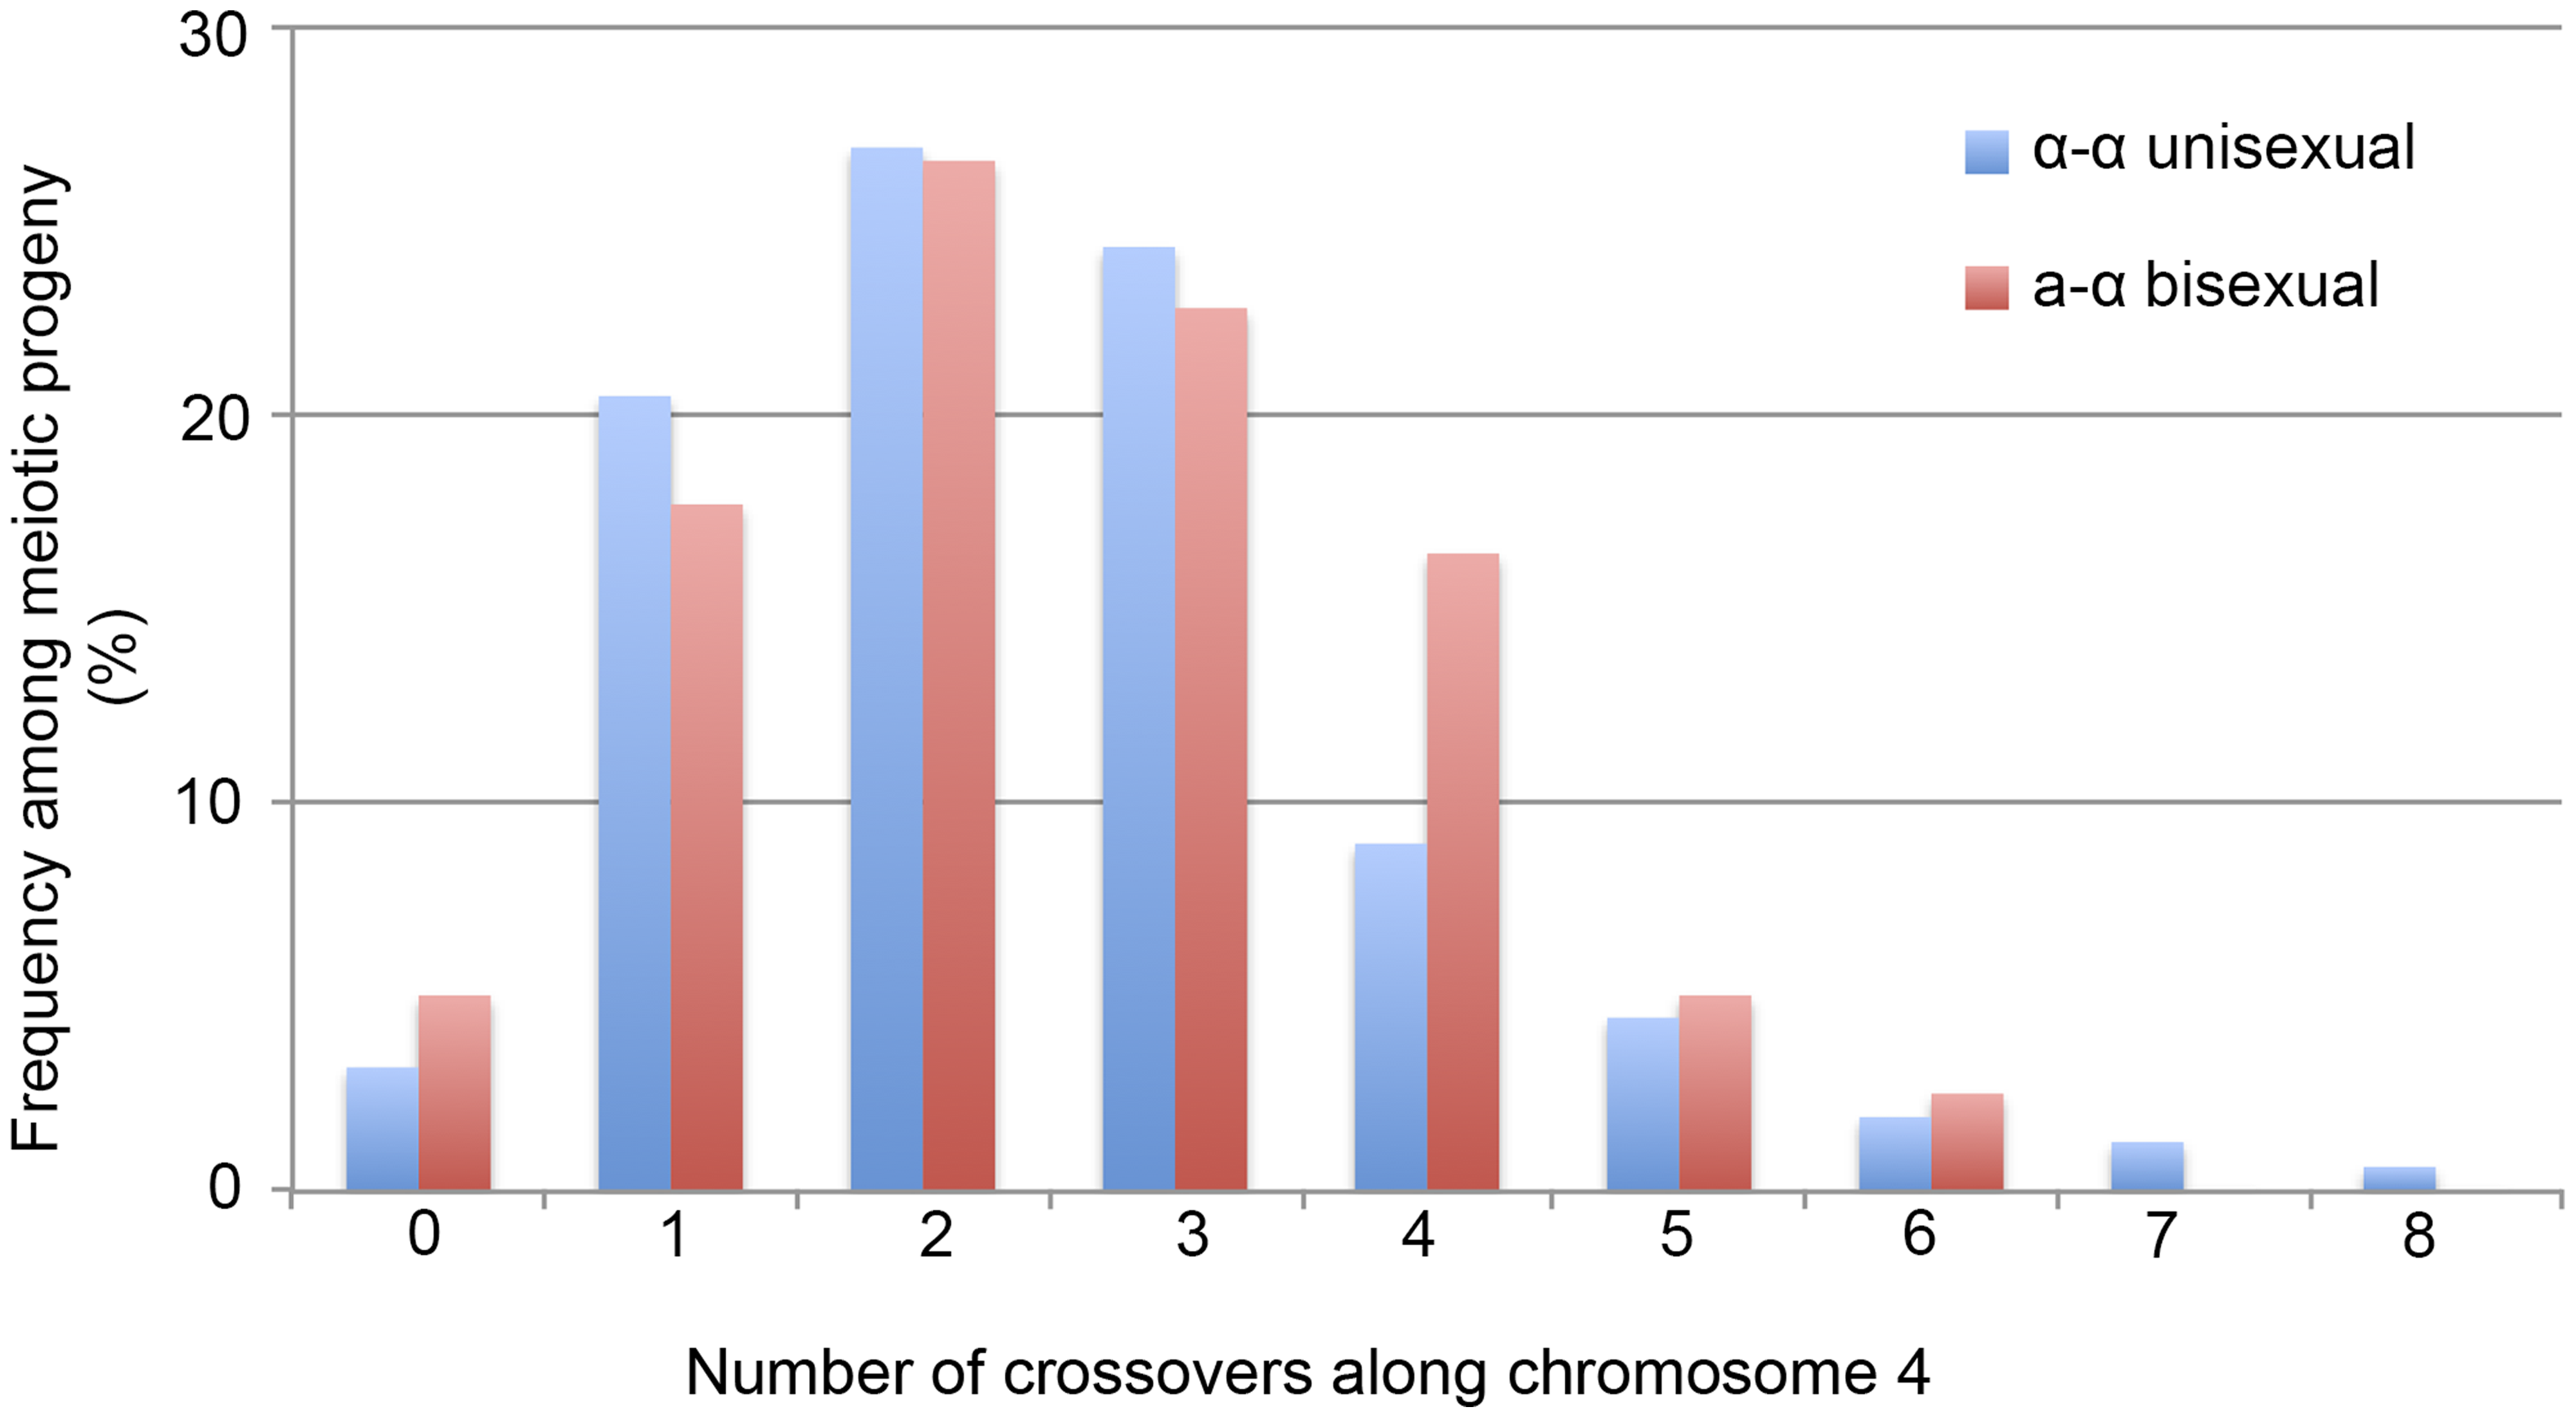 Crossovers are distributed along chromosome 4 during α-α unisexual and a-α bisexual reproduction.